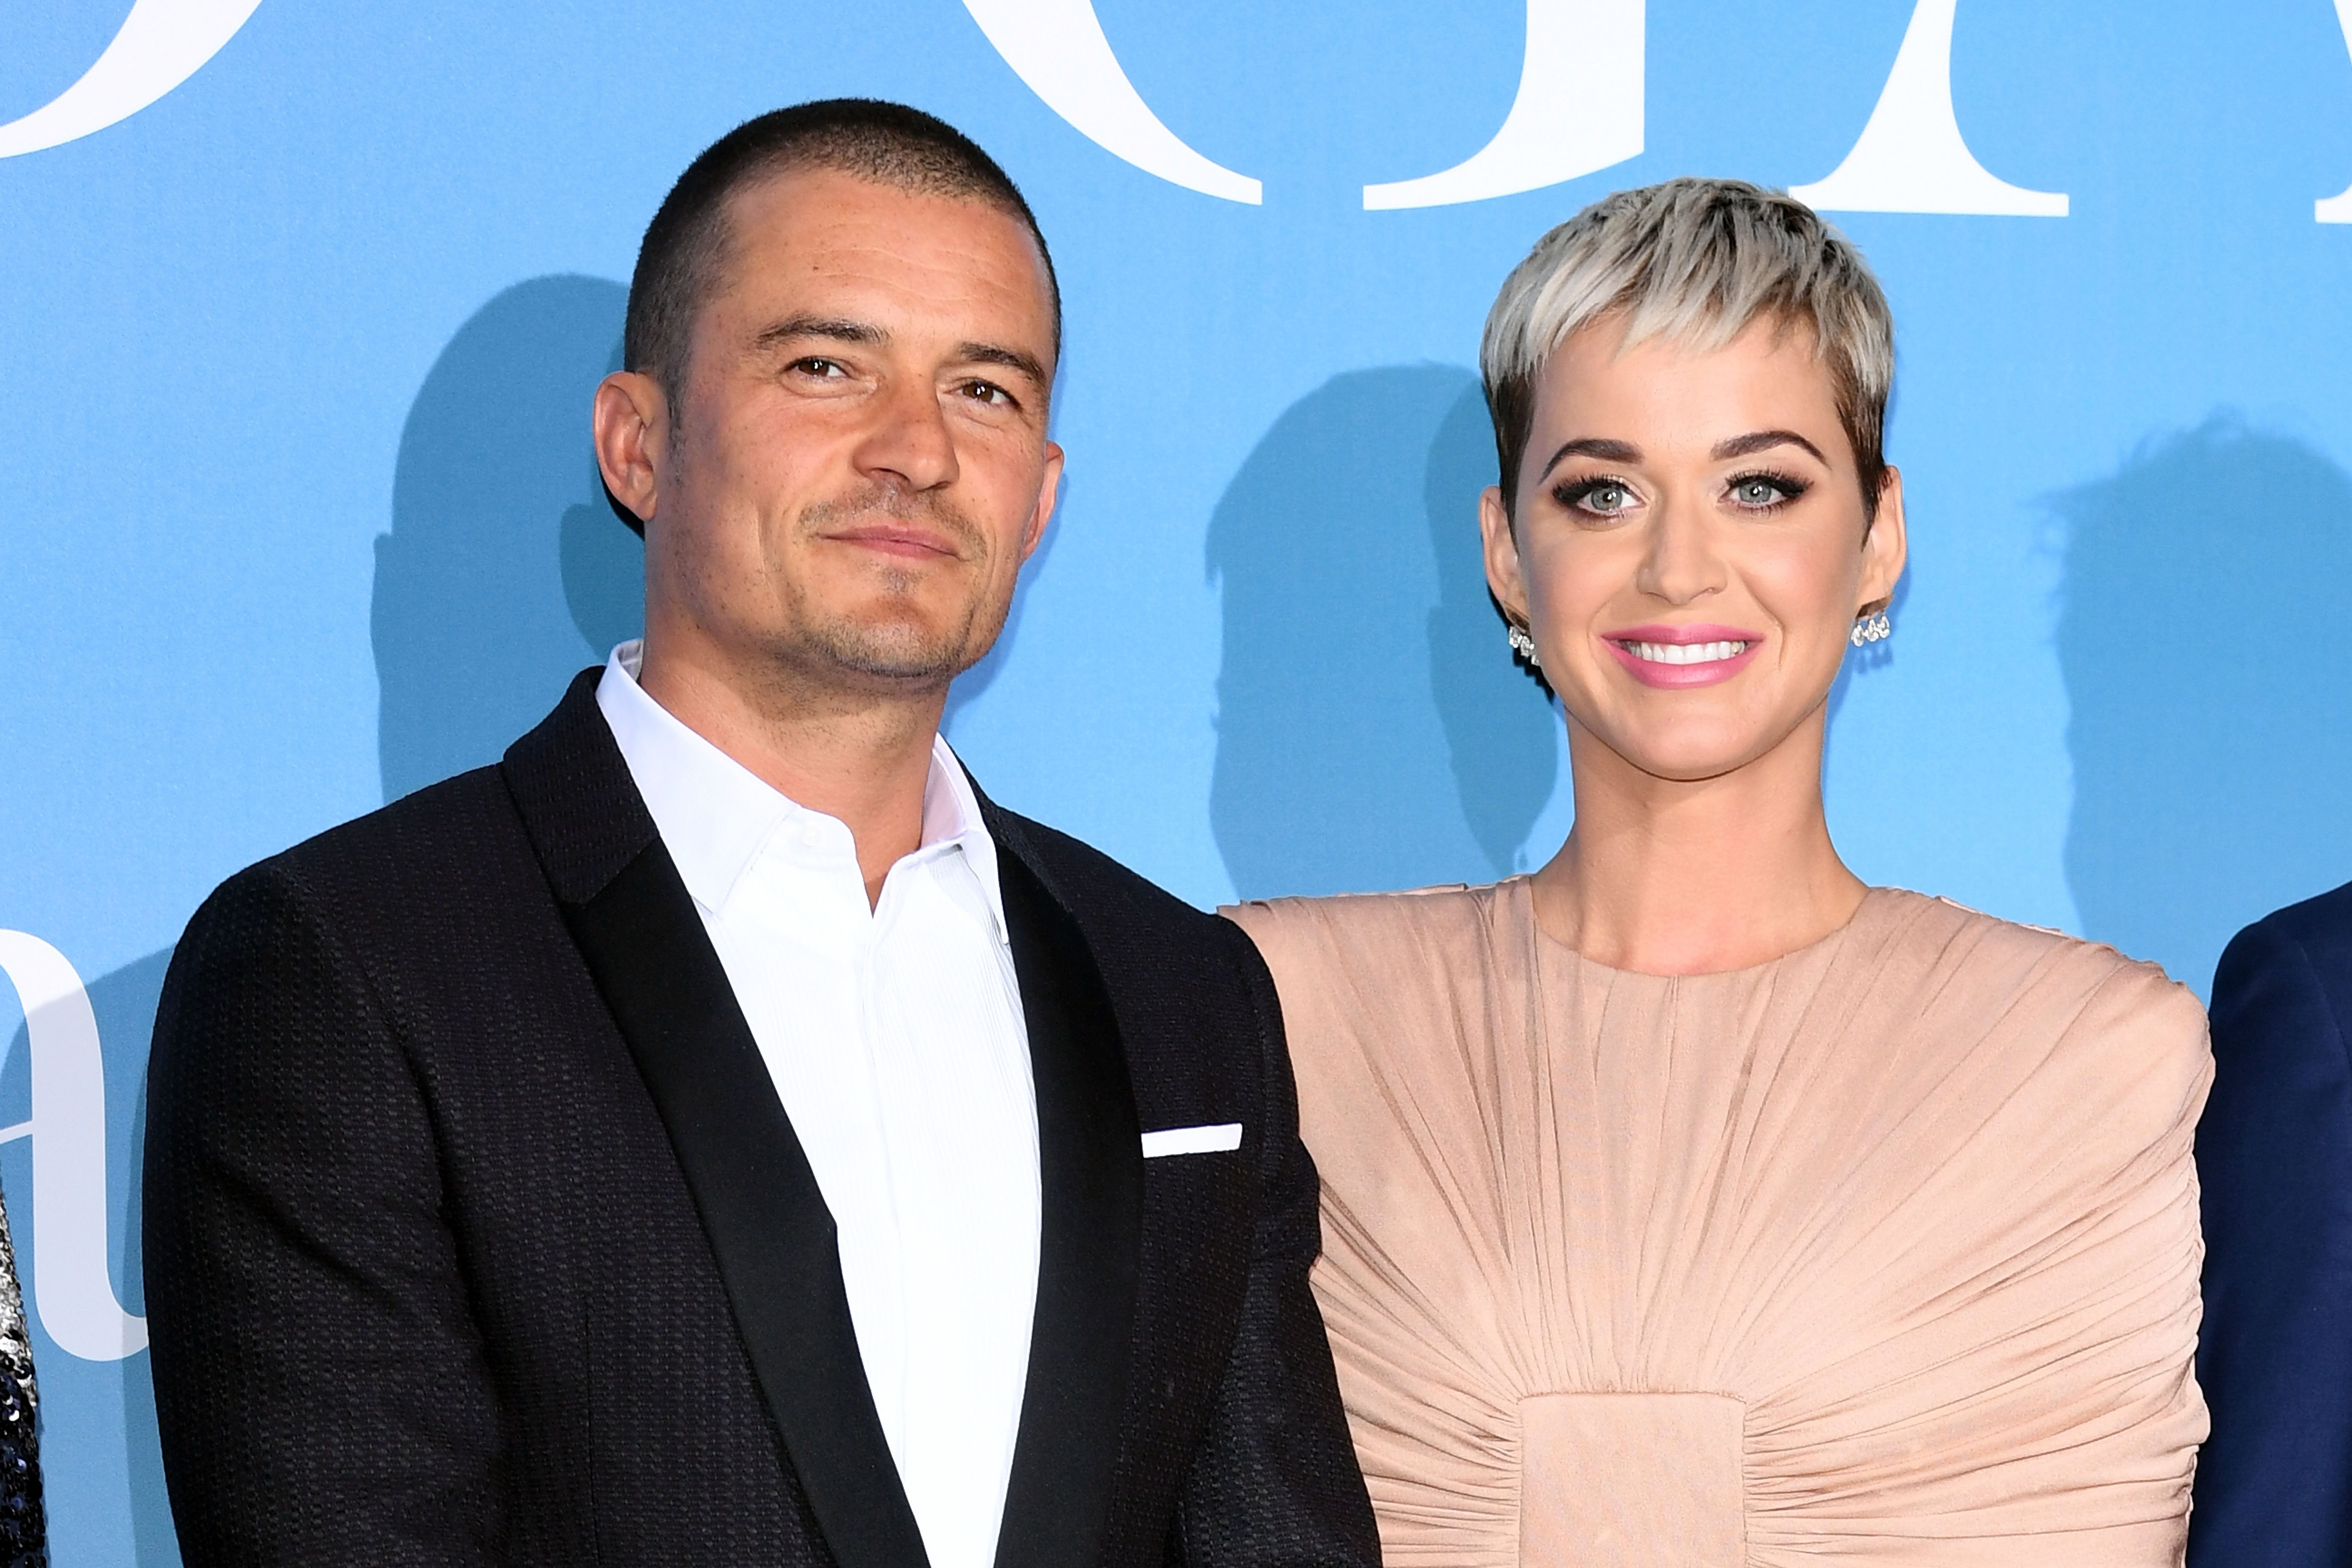 Orlando Bloom and Katy Perry attend the Monte-Carlo Gala for the Global Ocean 2018 on September 26, 2018 in Monte-Carlo, Monaco. | Photo: Getty Images